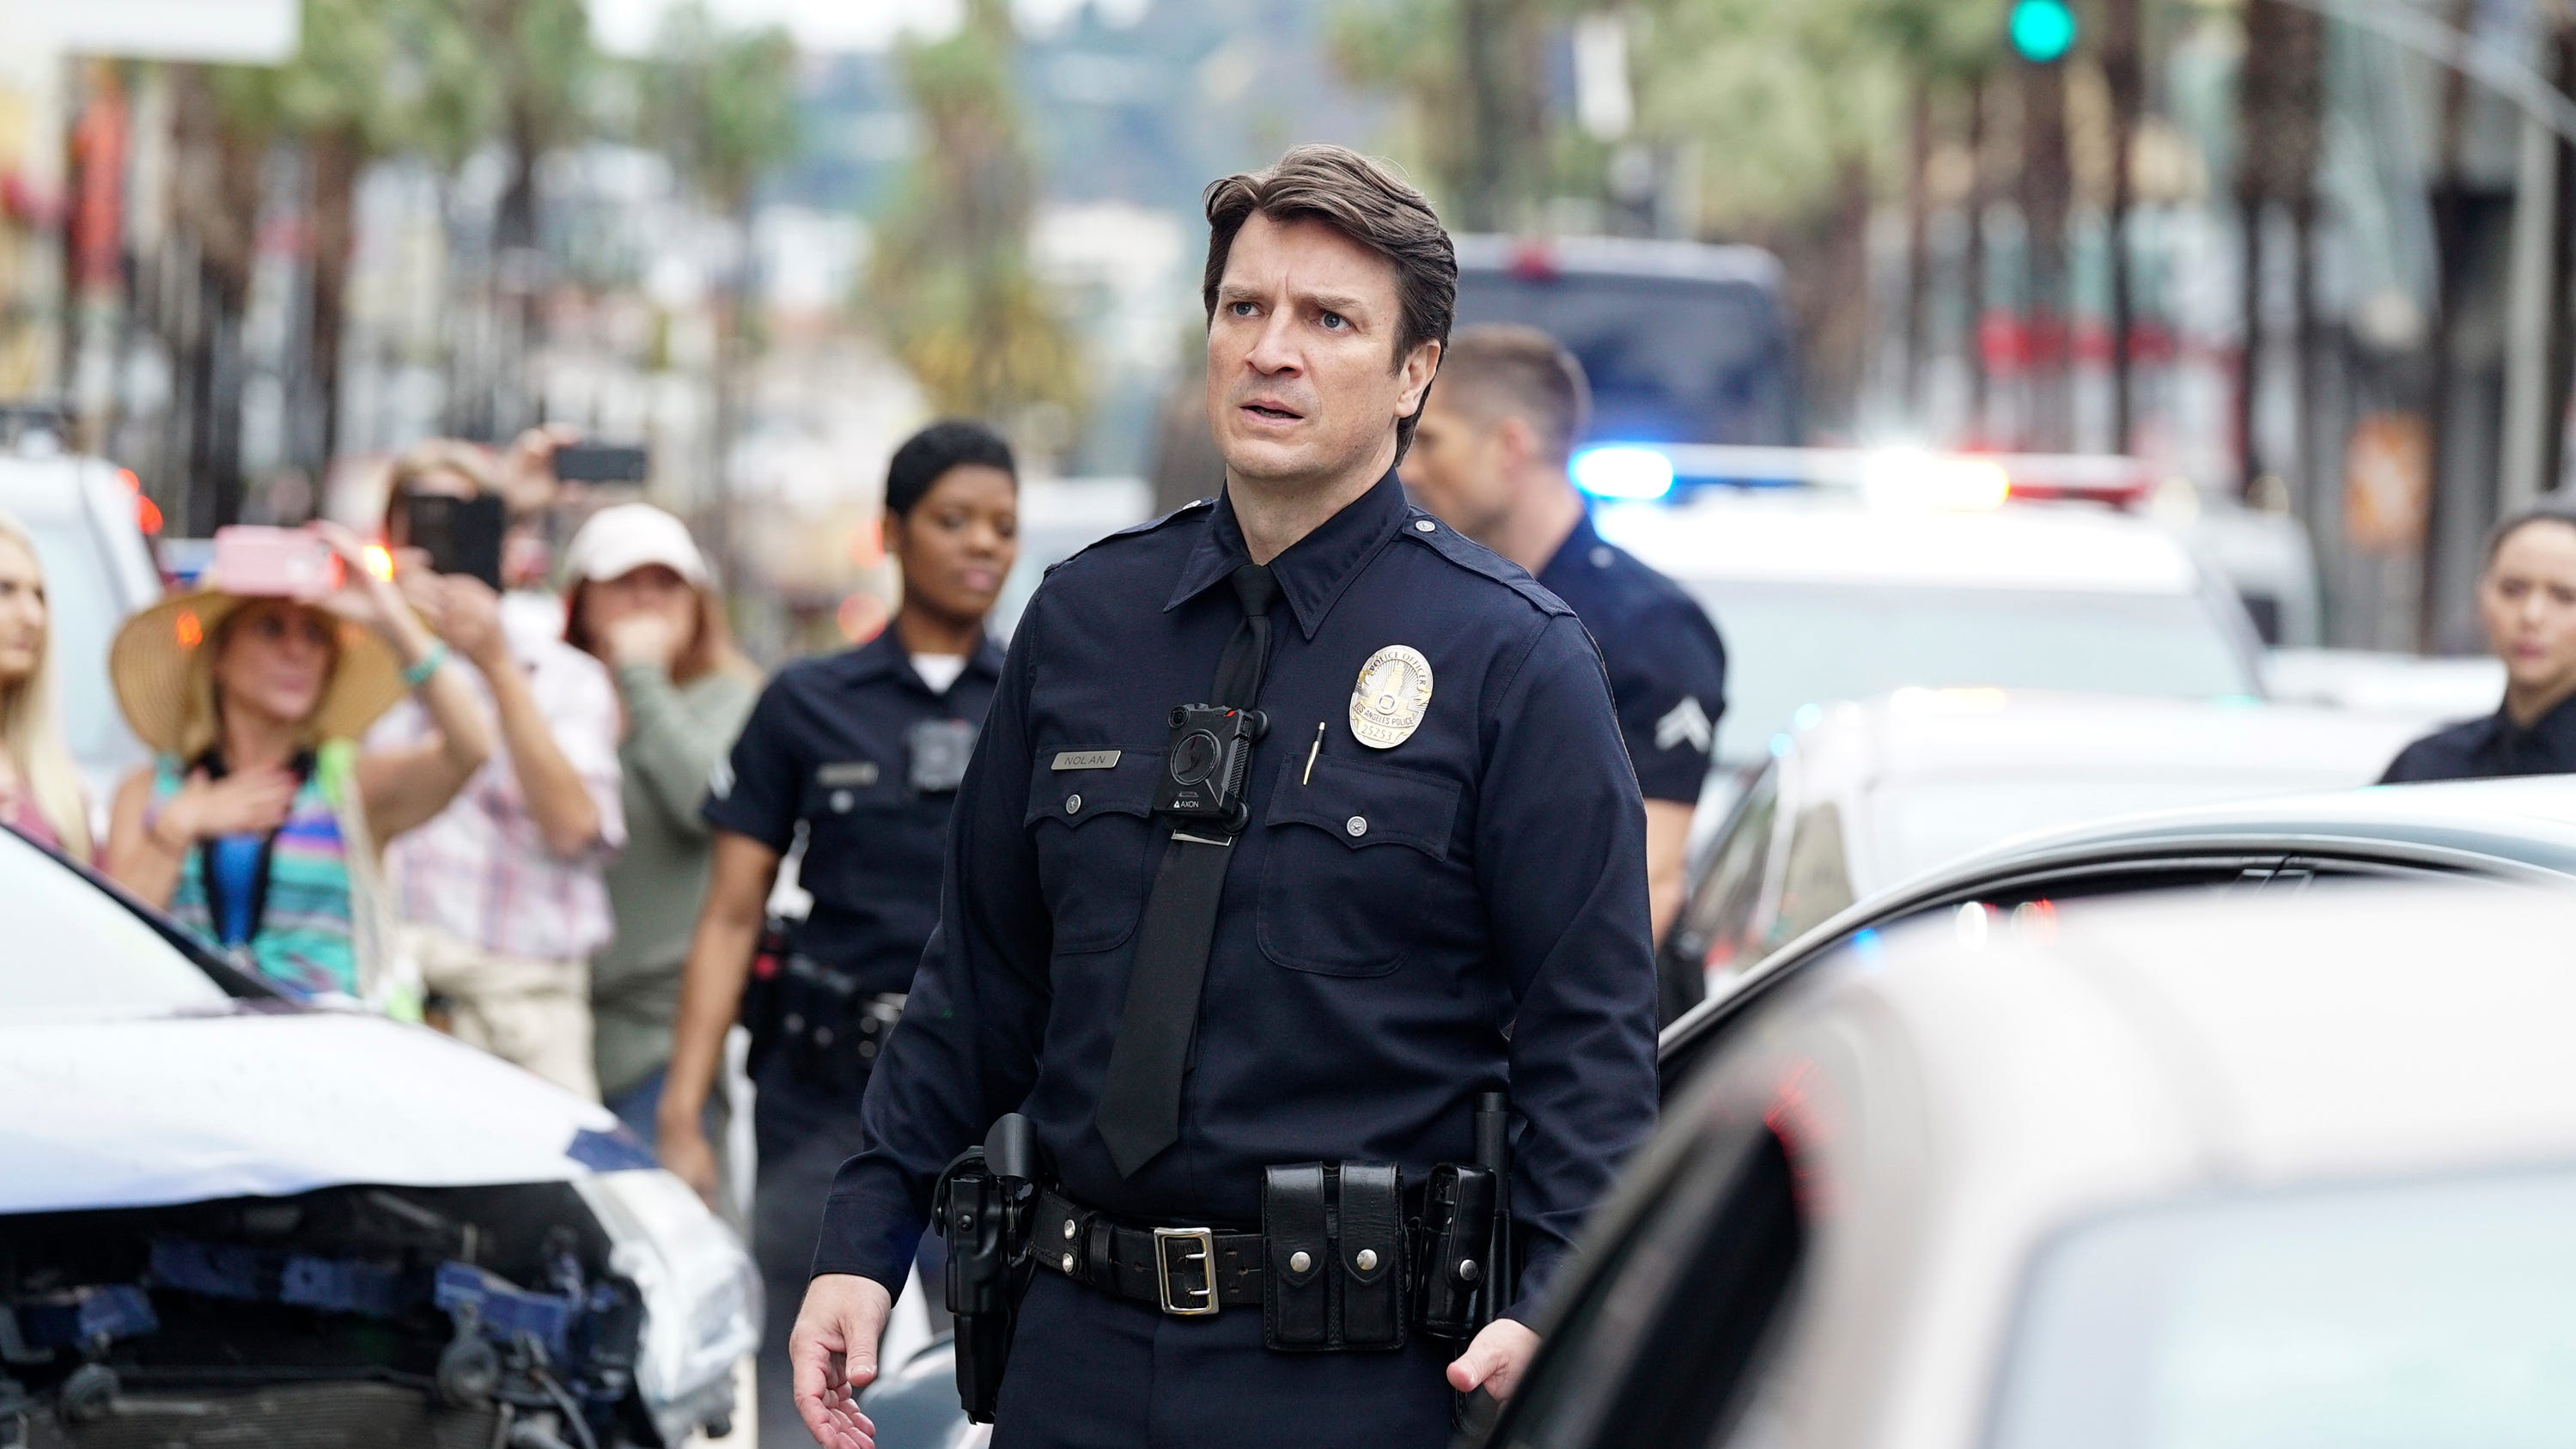 Review: Nathan Fillion is masterfully charming, even in by-the-numbers 'The Rookie'